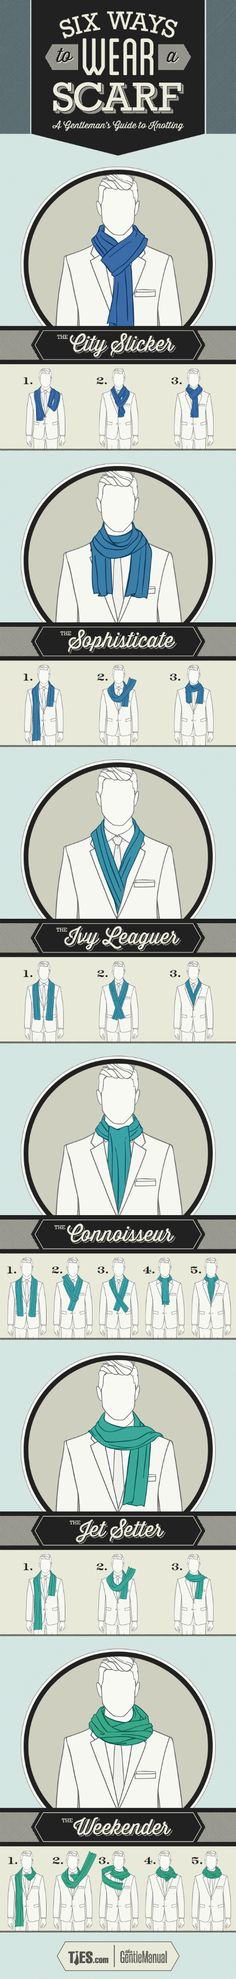 Being a gentleman is a choice and takes practice. Our ultimate gentleman cheat sheet will get started on your journey to looking and acting classy.